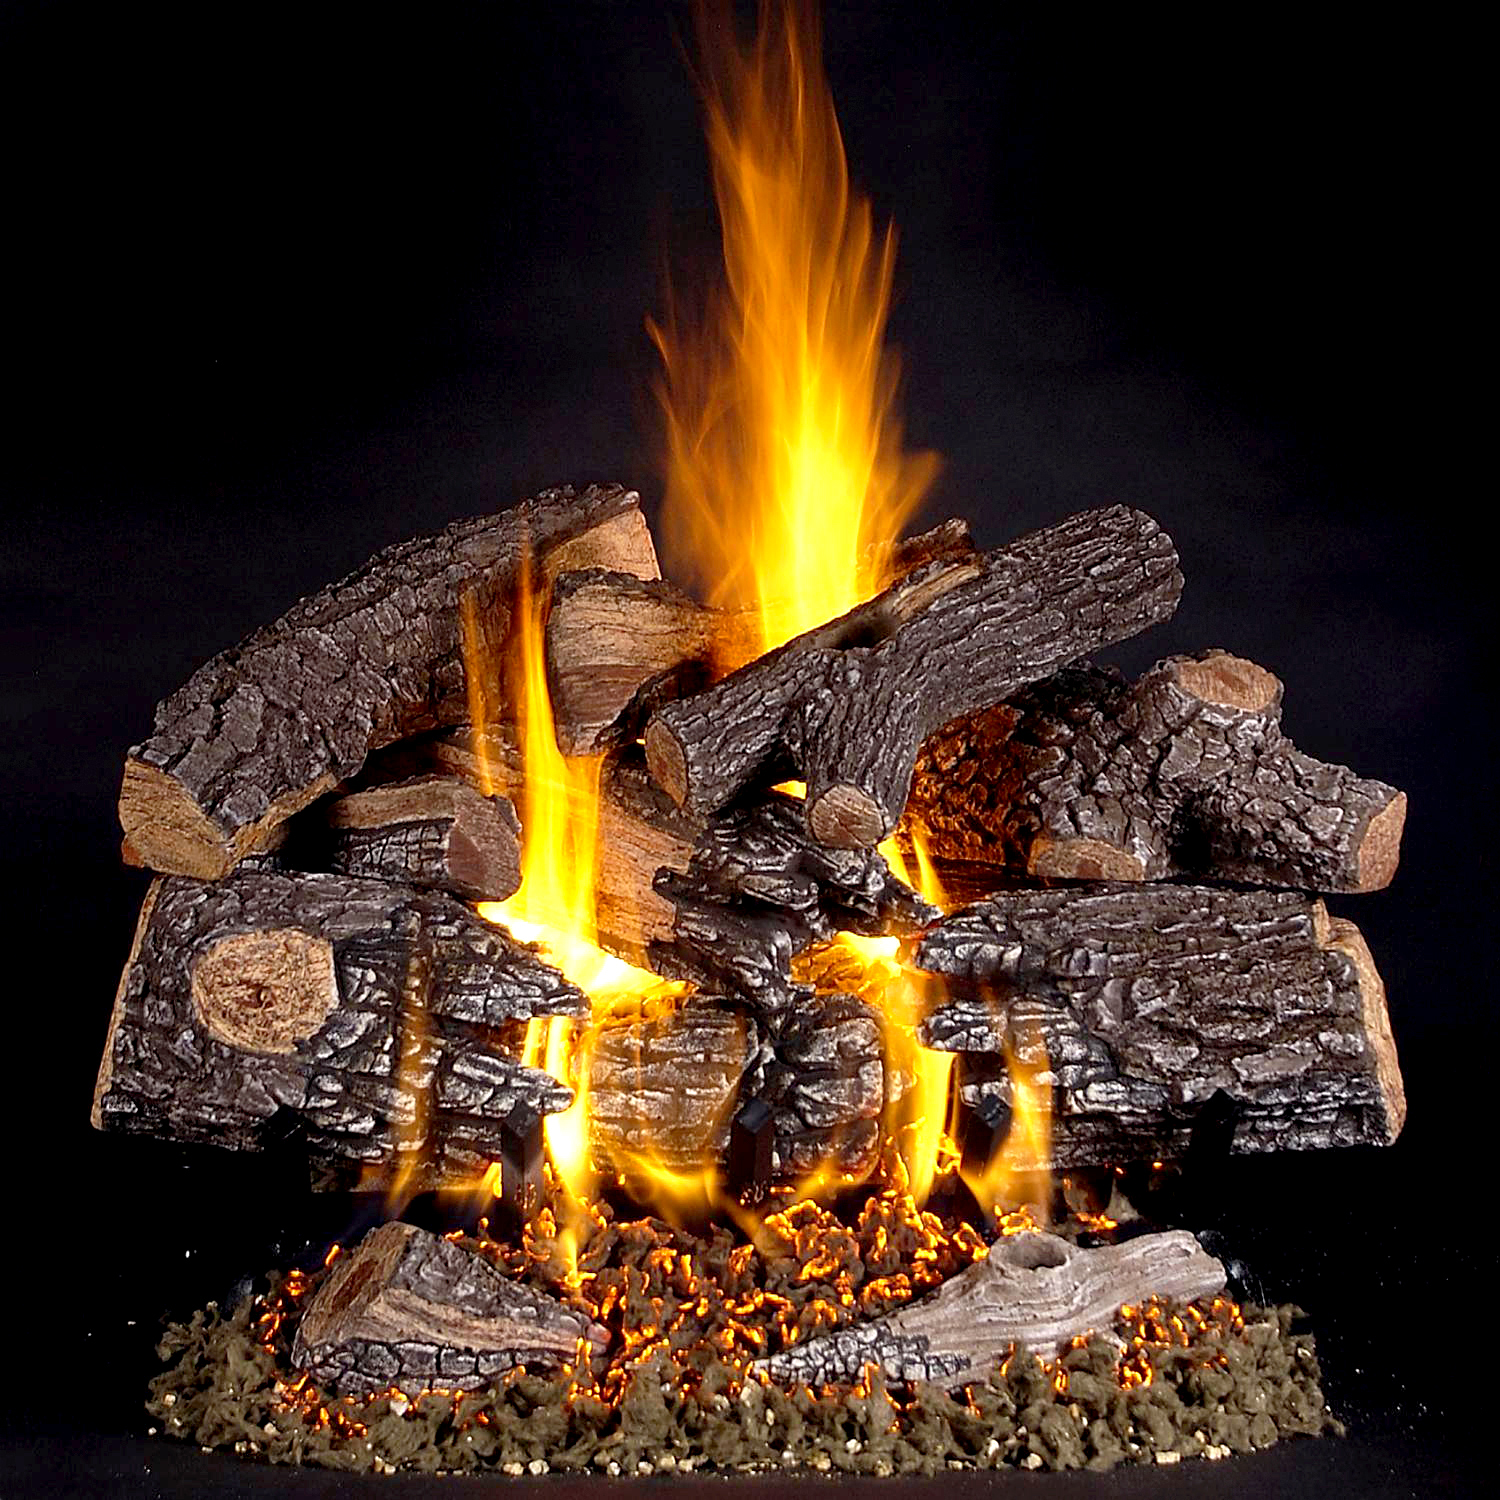 Timberfire Log Set